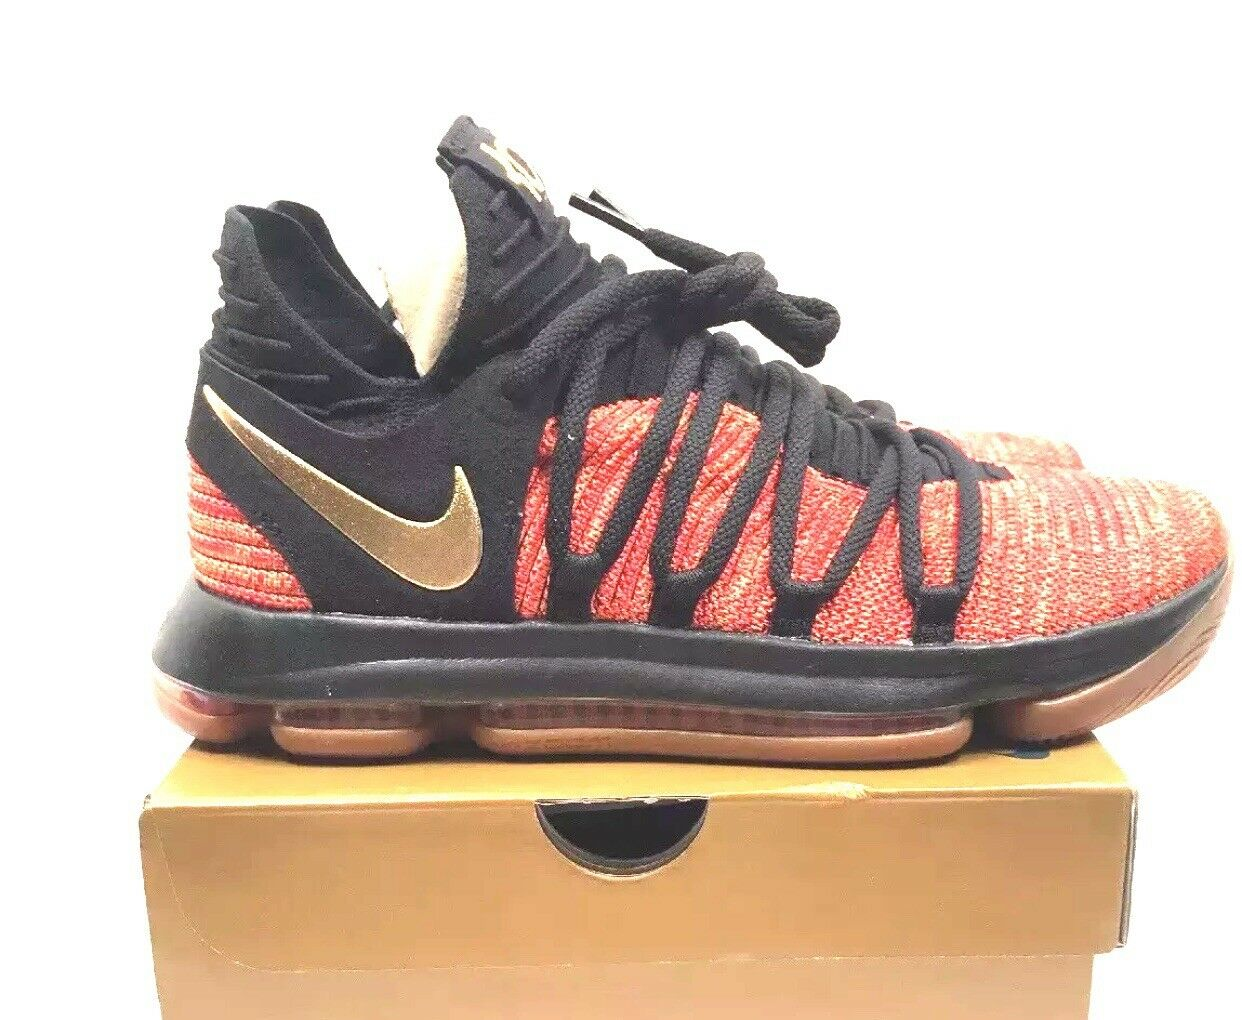 NEW NIKE ID ZOOM KD10 NFS MENS BASKETBALL SHOES MENS SIZE 11.5 KEVIN DURANT